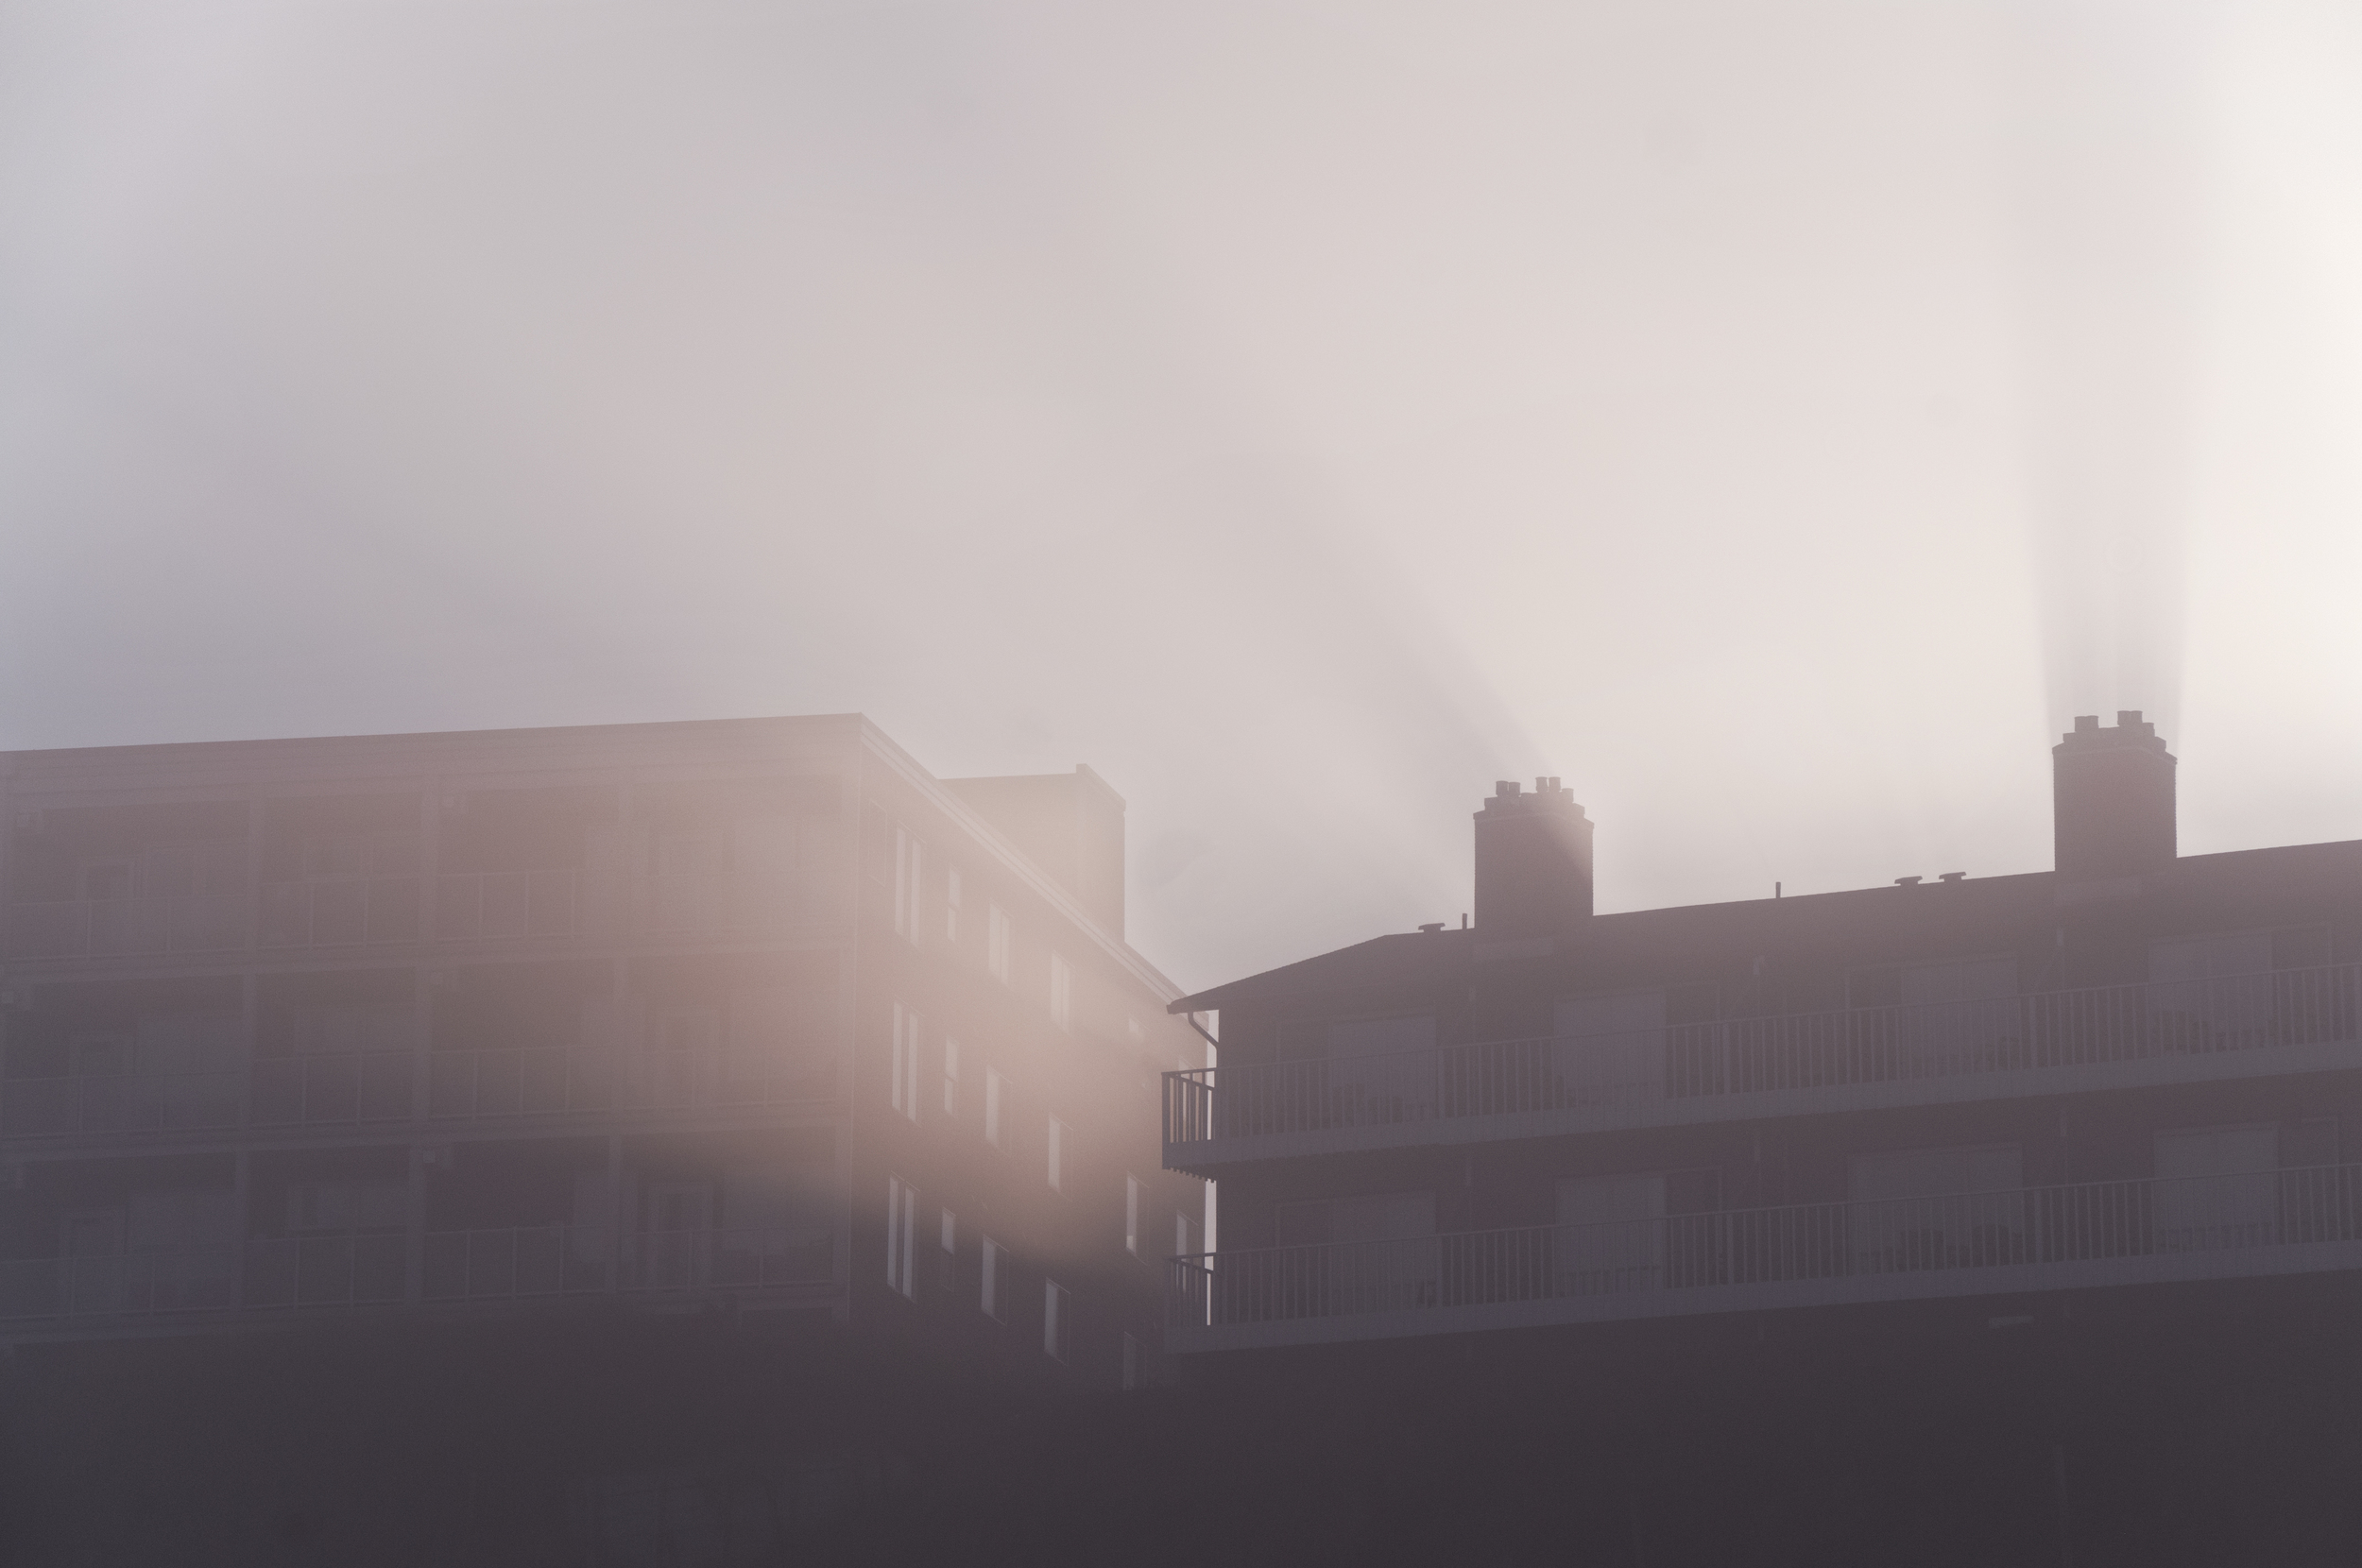 Light 'n' shadow, and that's all. (Lincoln City, Oregon; Aug 2014)